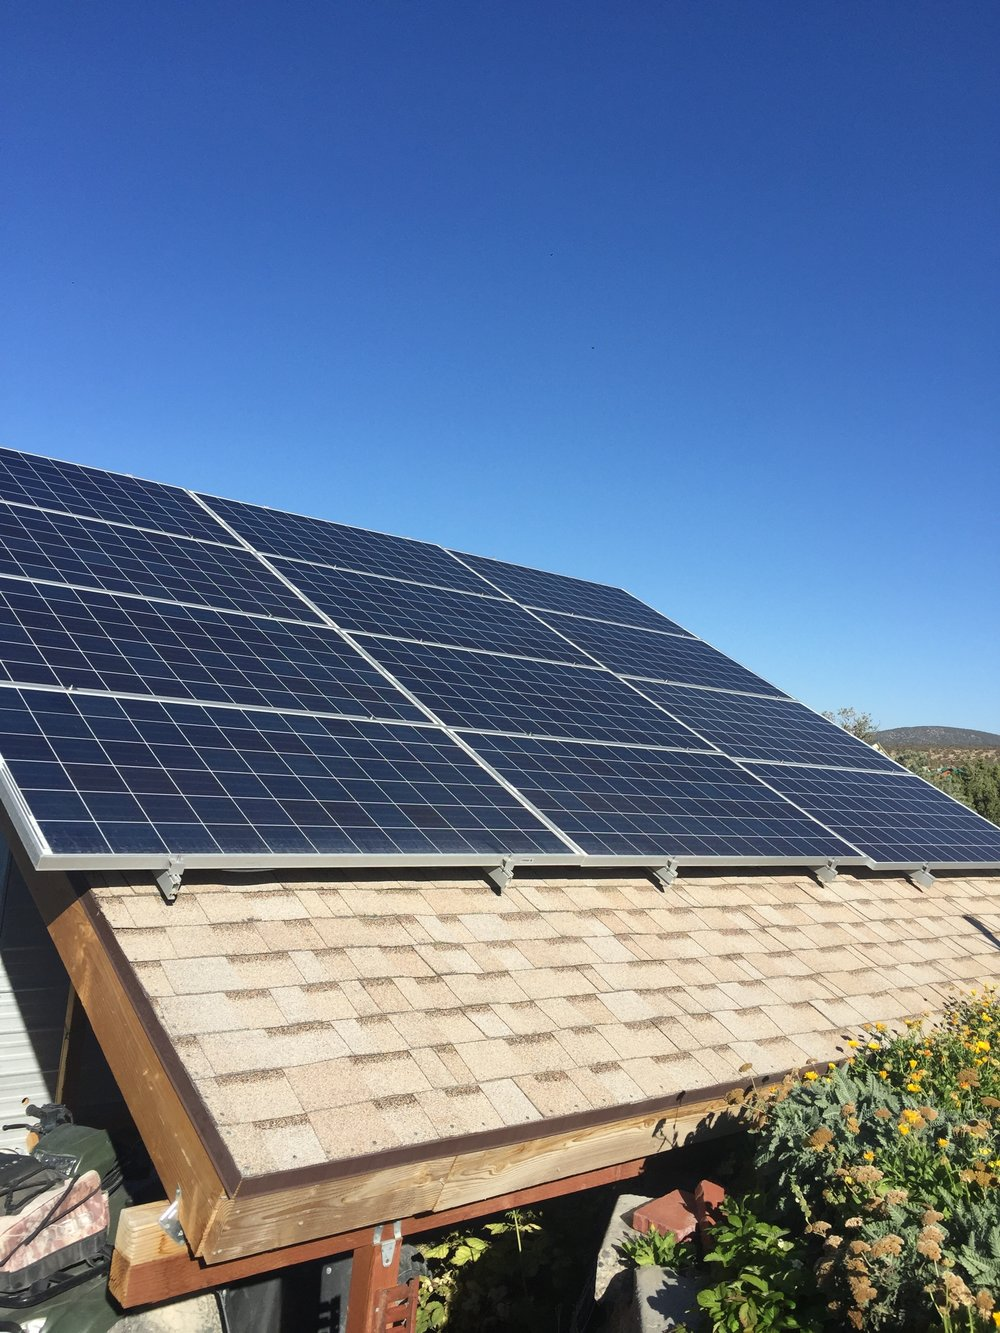 Here is a picture of the solar panels. My husband built this stand, and I'm very proud of him. These panels are quite large---about 3 feet x 6 feet each.